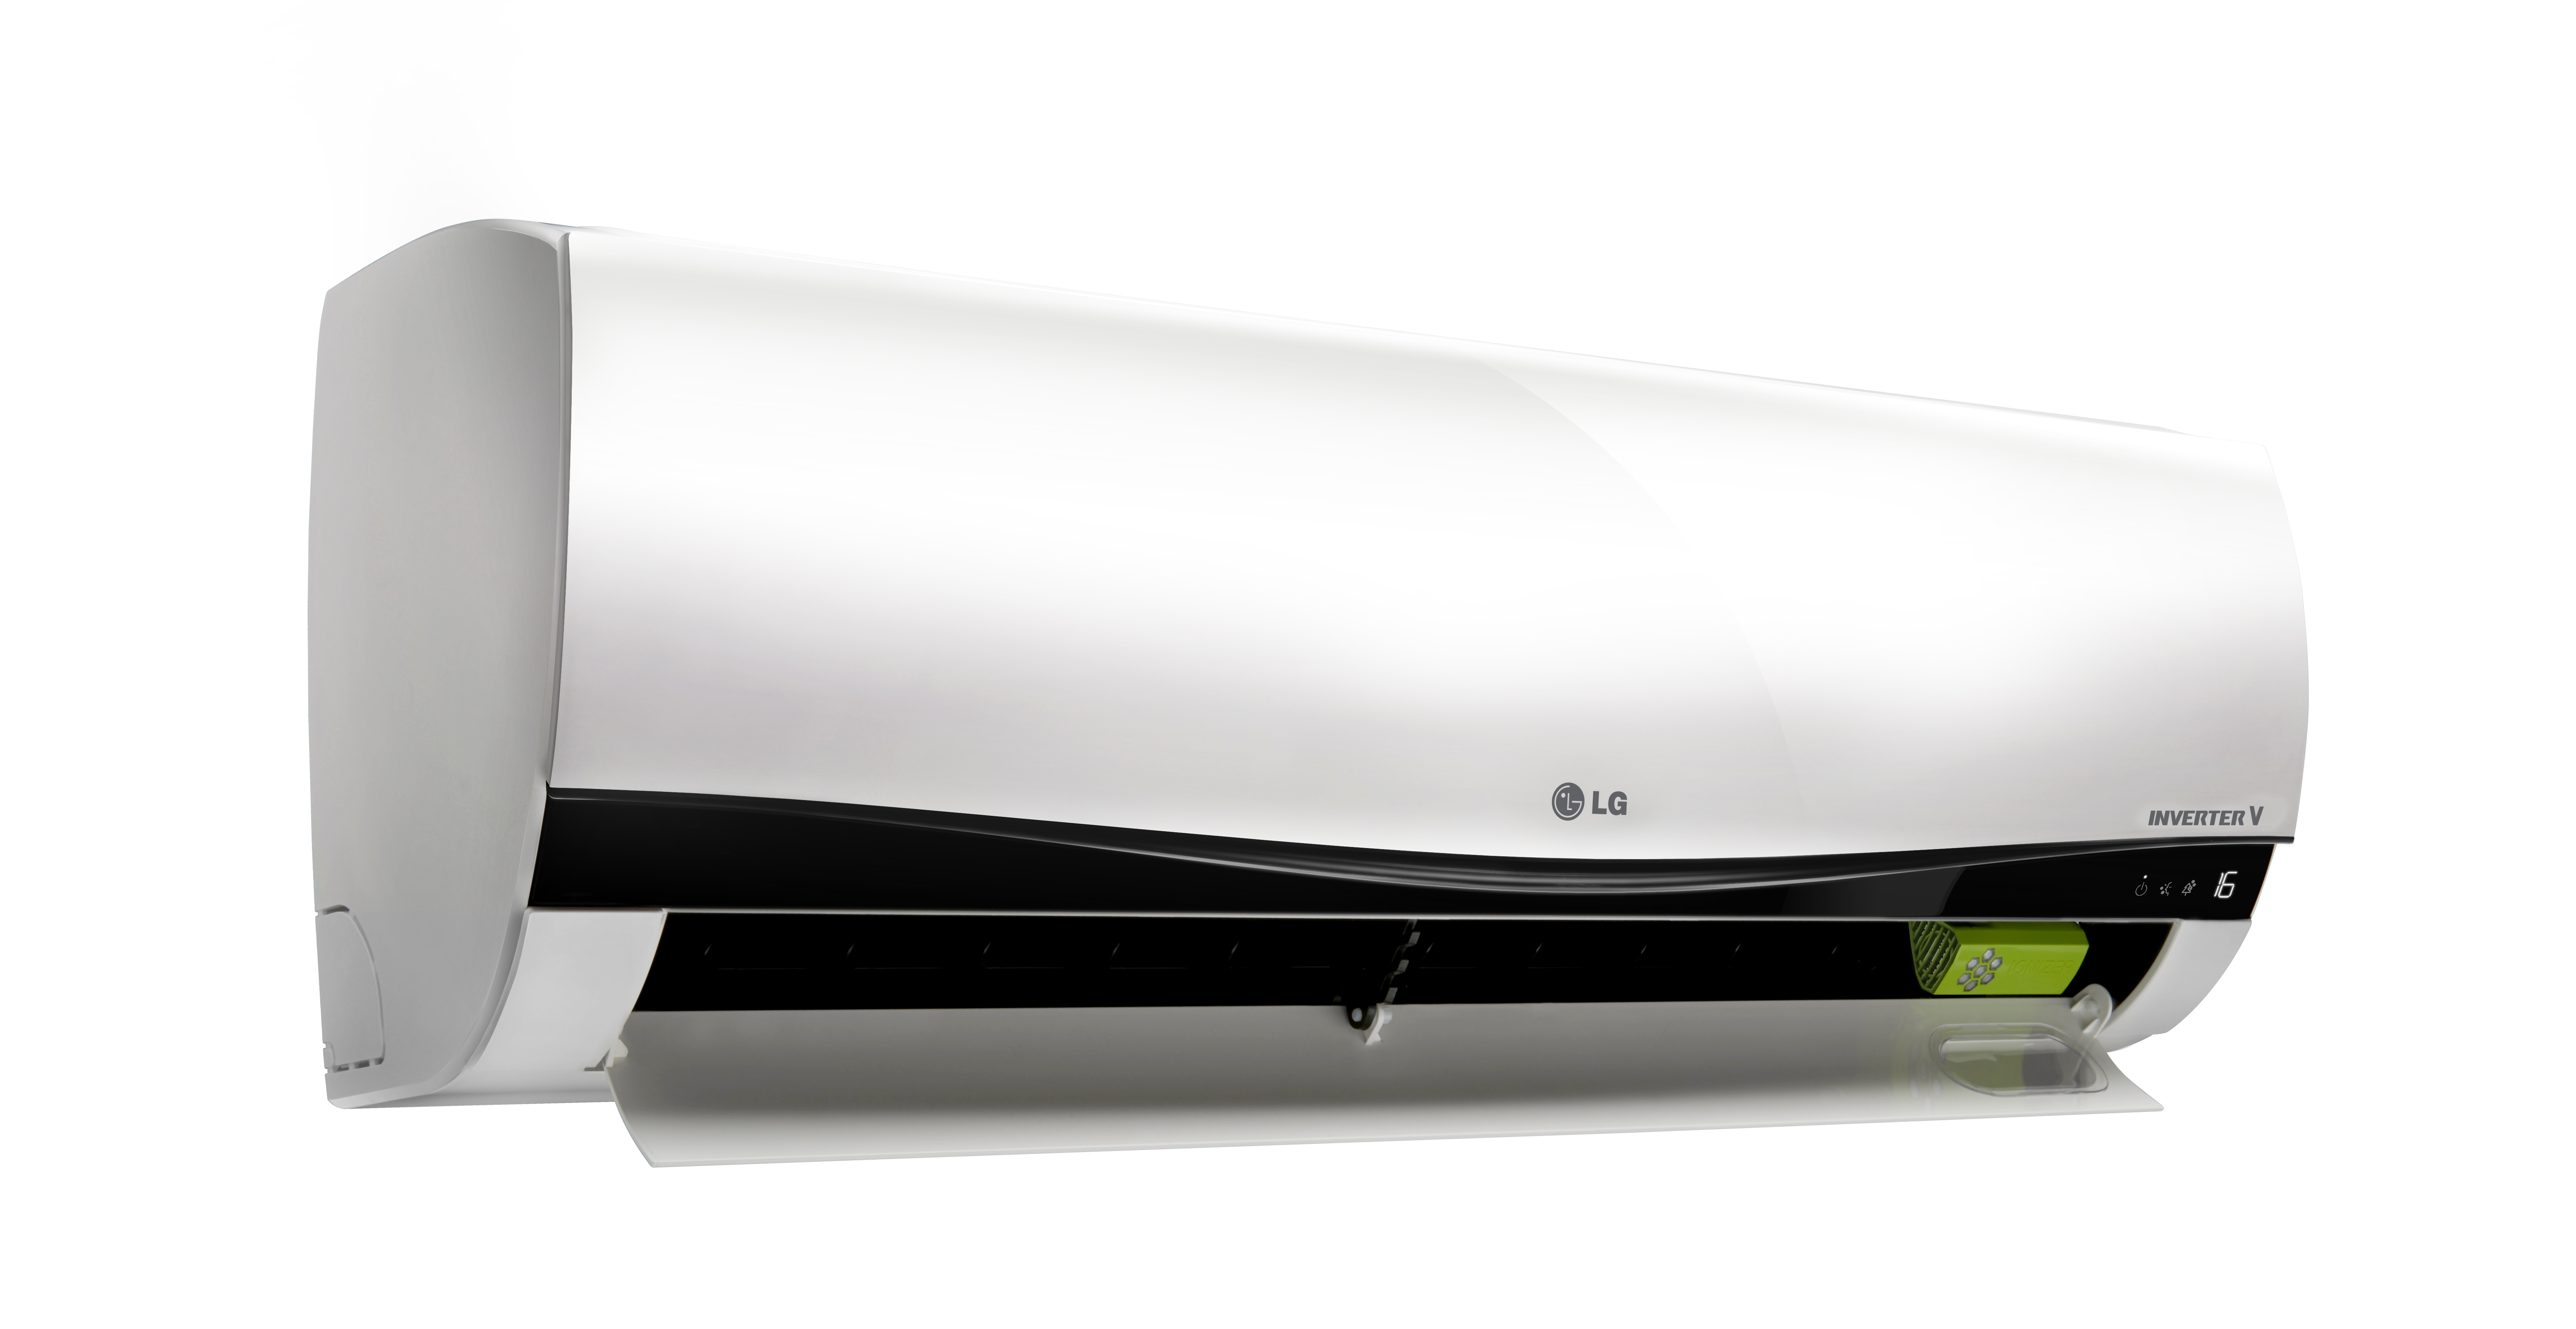 lg keeps homes cool and classy with inverter v air conditioners. Black Bedroom Furniture Sets. Home Design Ideas